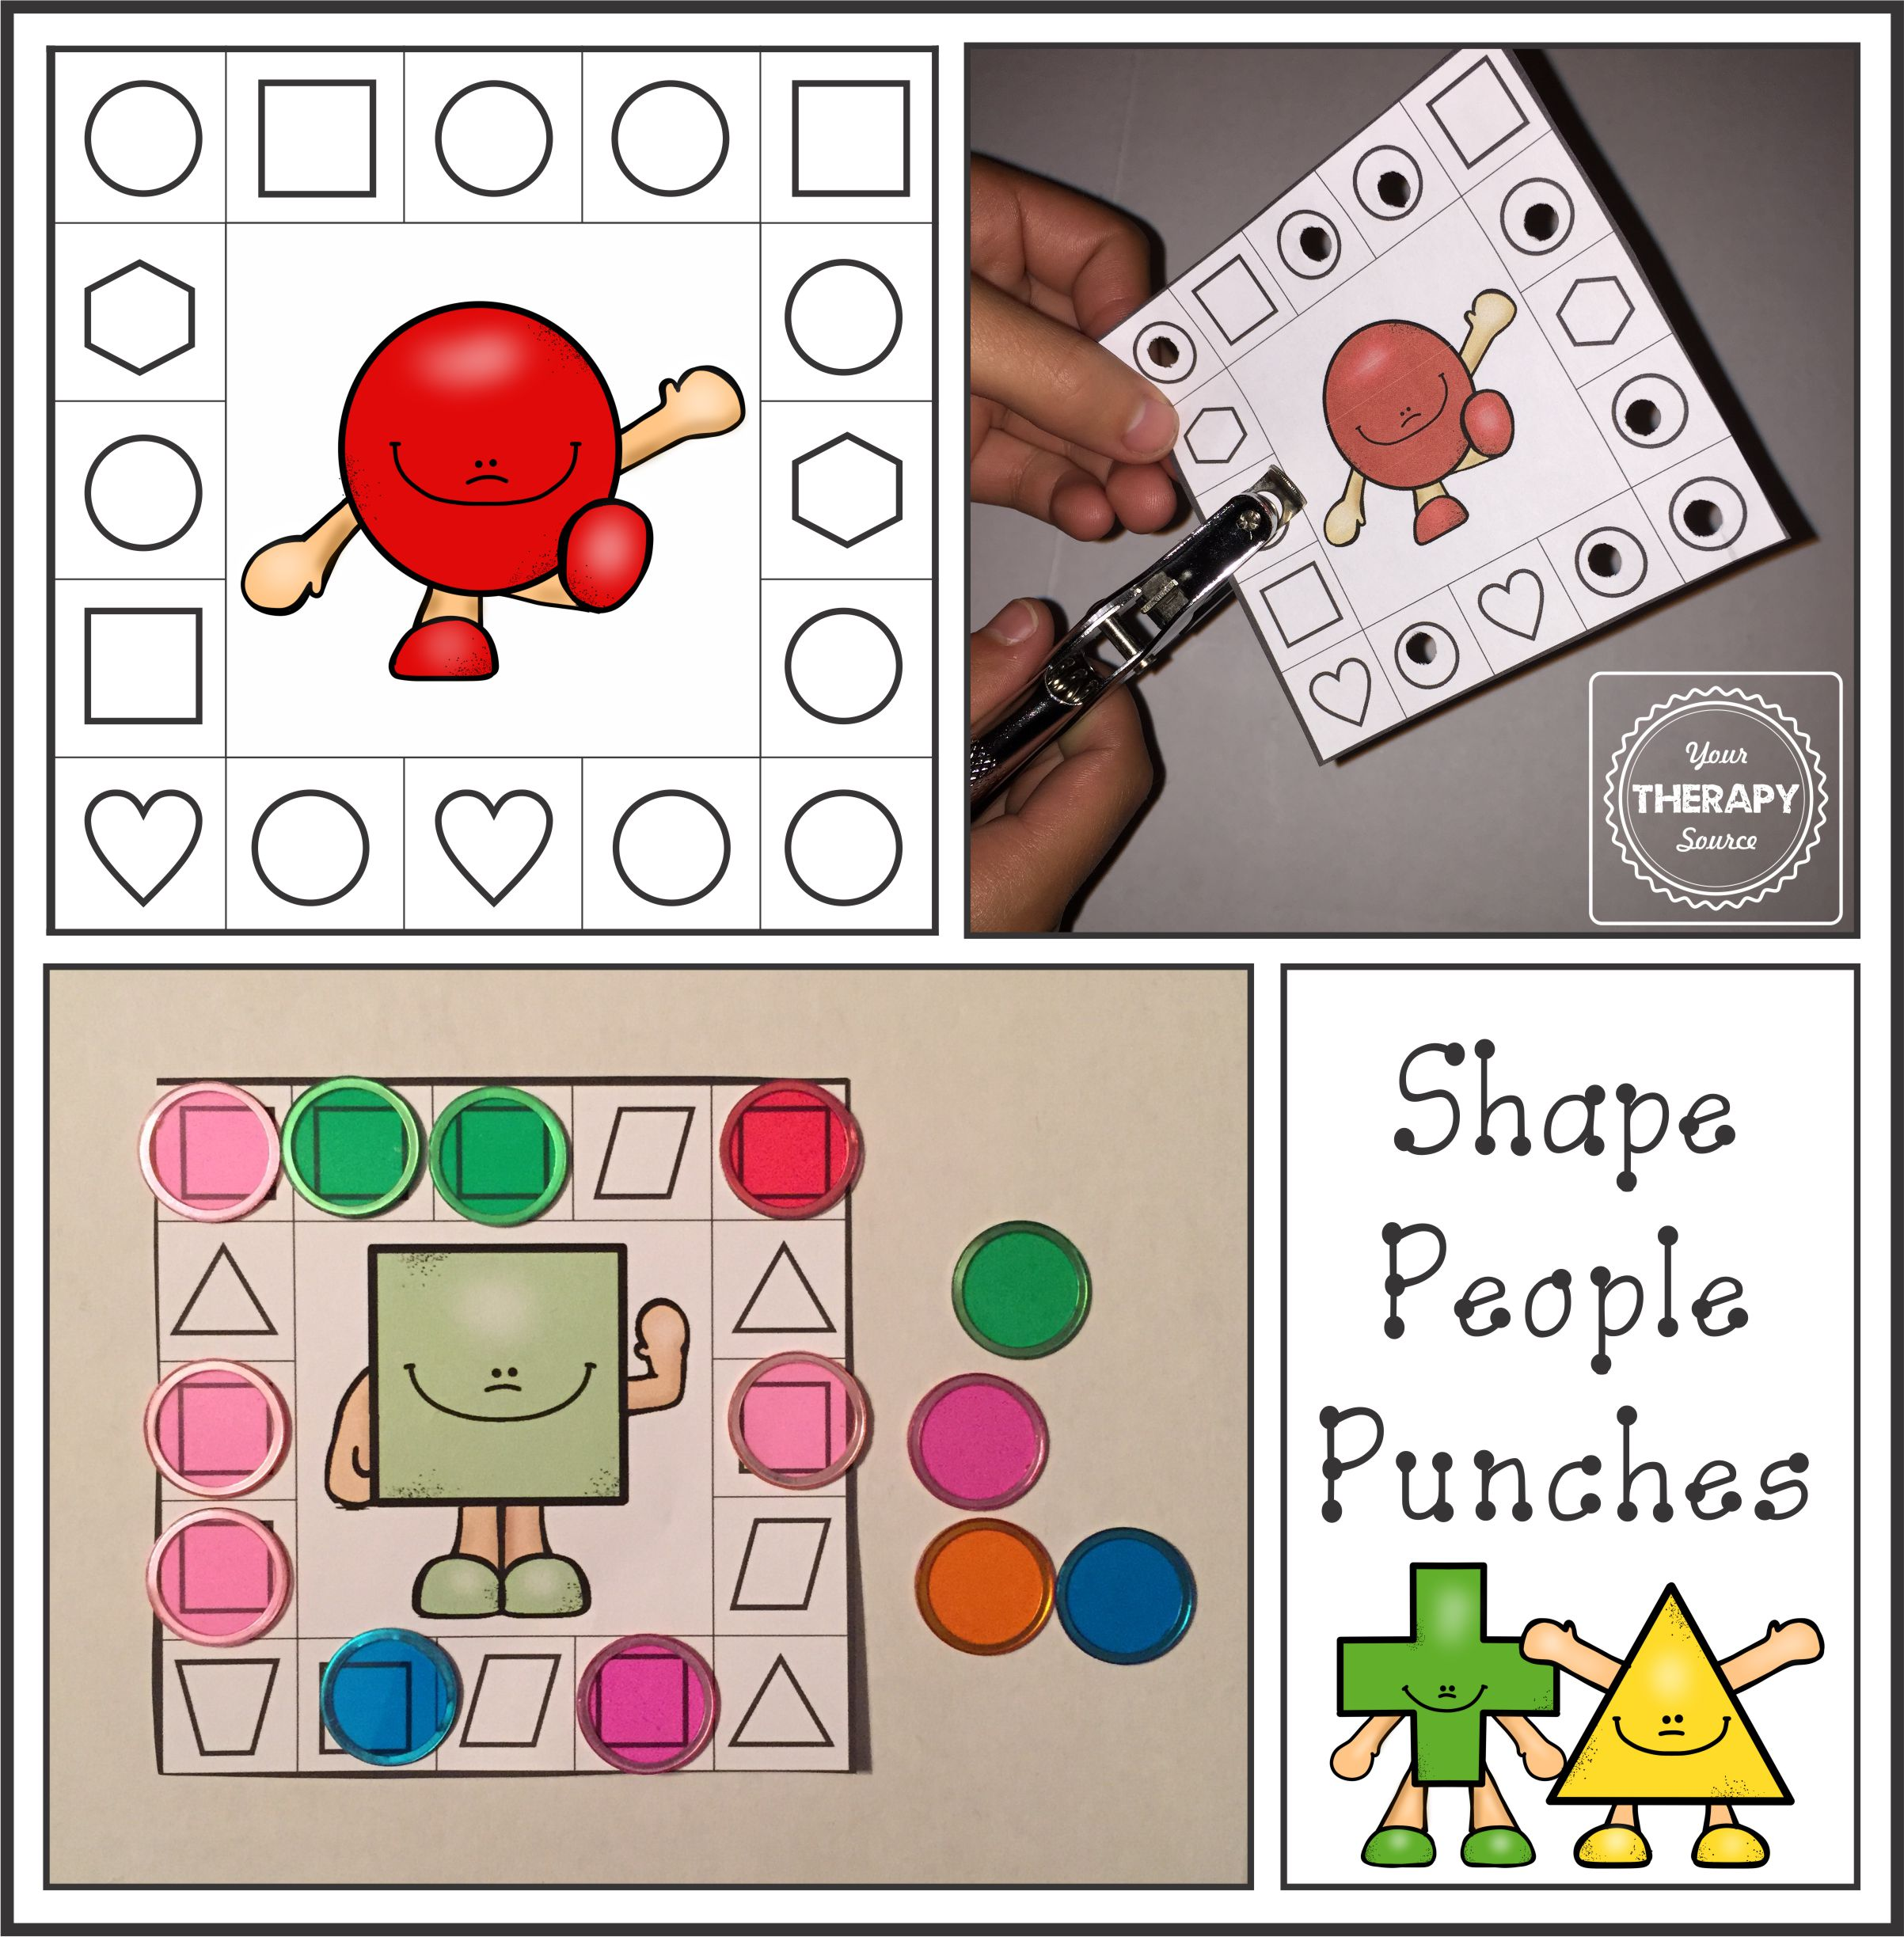 Shape People Punches